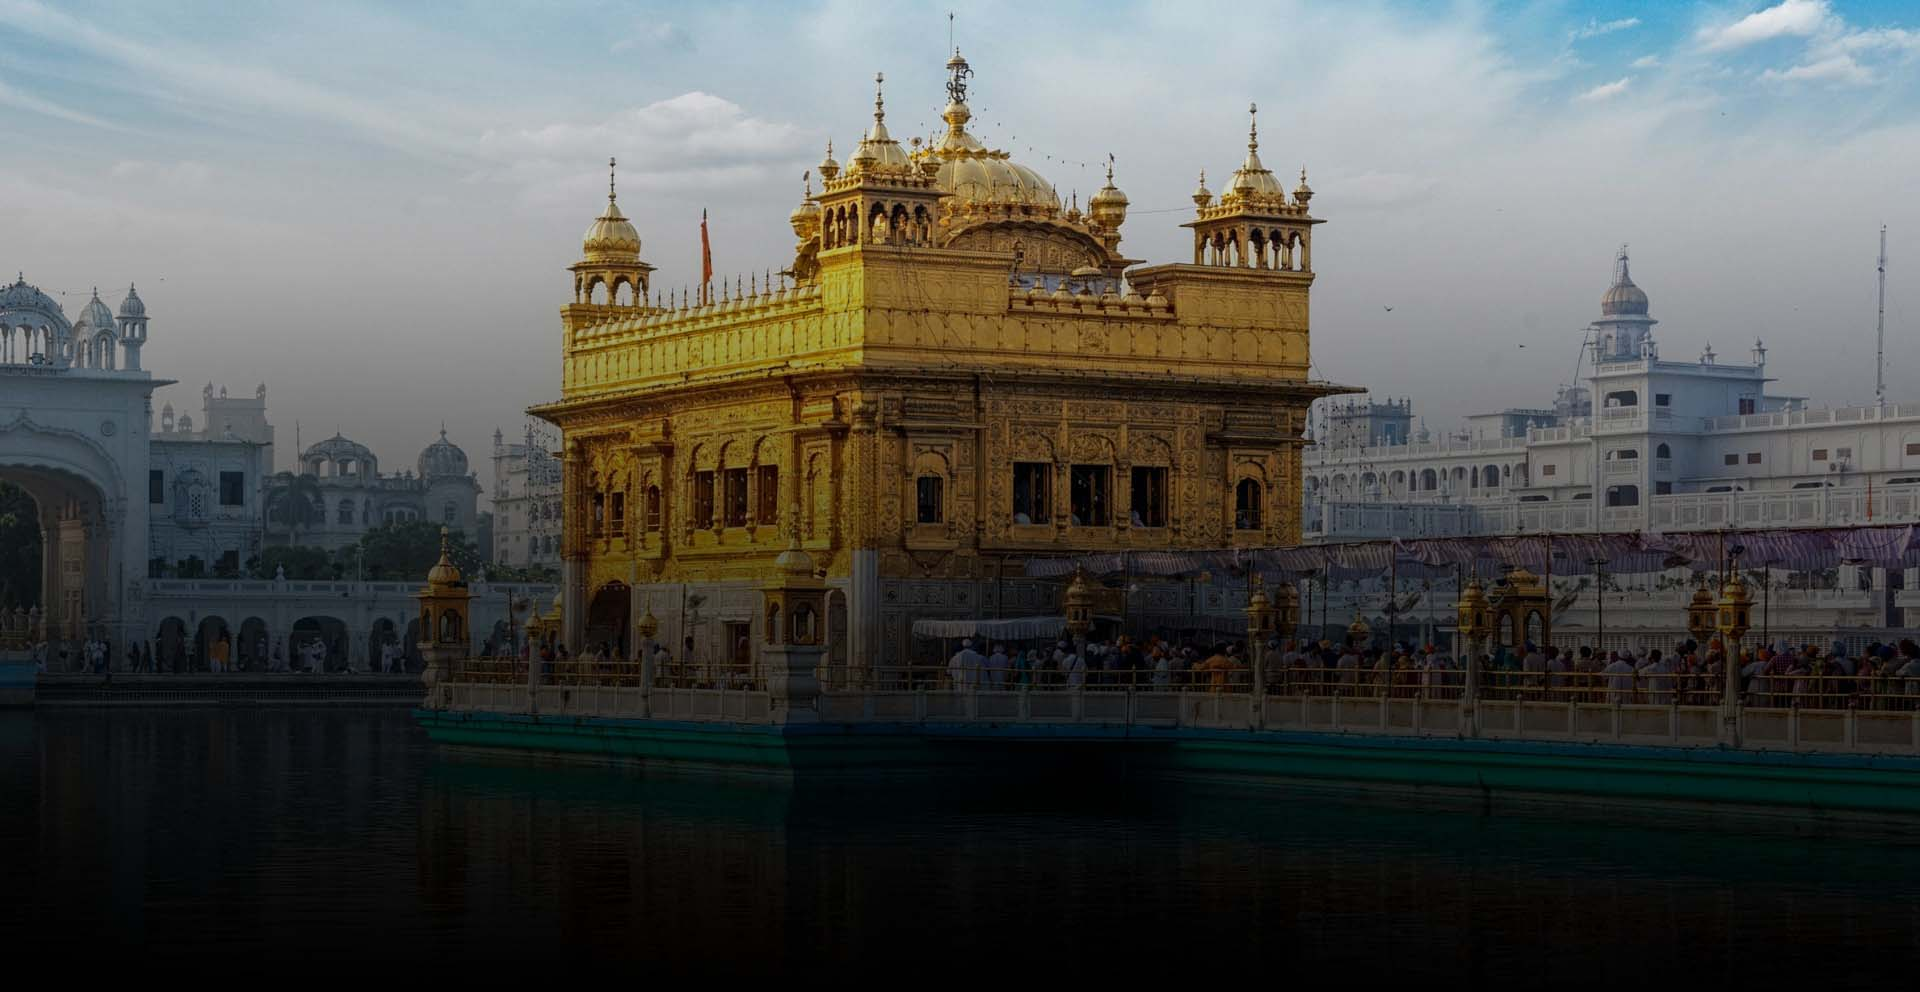 How Guru Nanak Jayanti is Celebrated in India - Important Rituals and Traditions